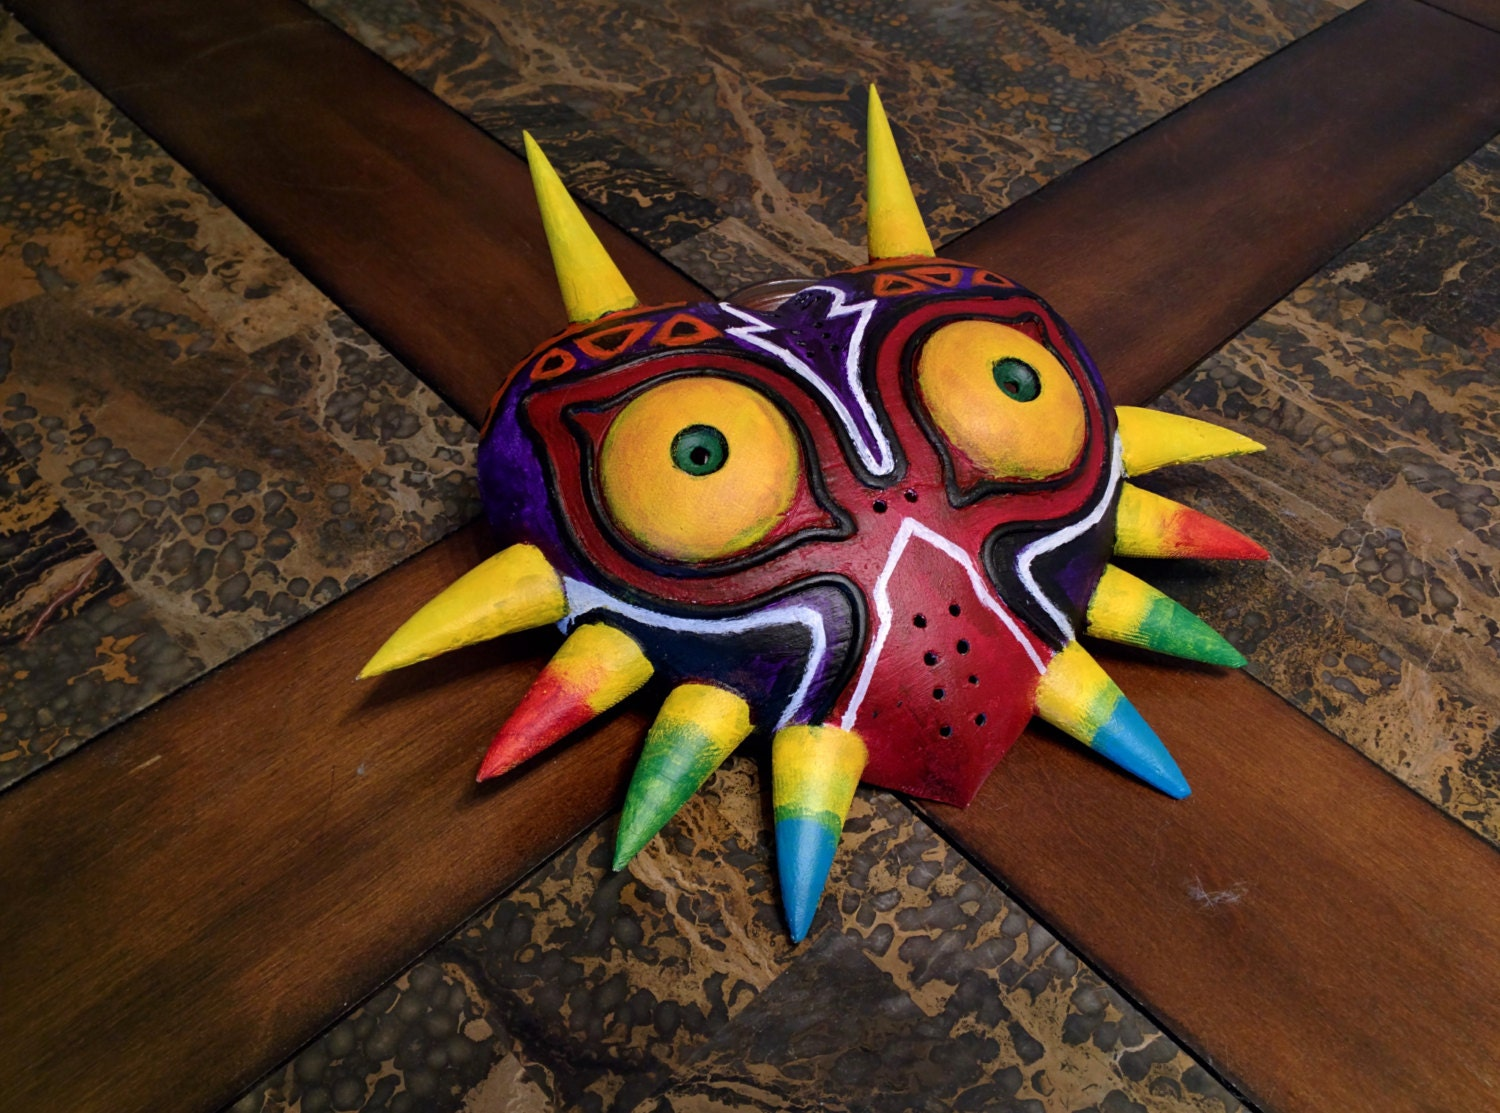 Majora's Mask Replica 3D-printed Hand-painted Cosplay